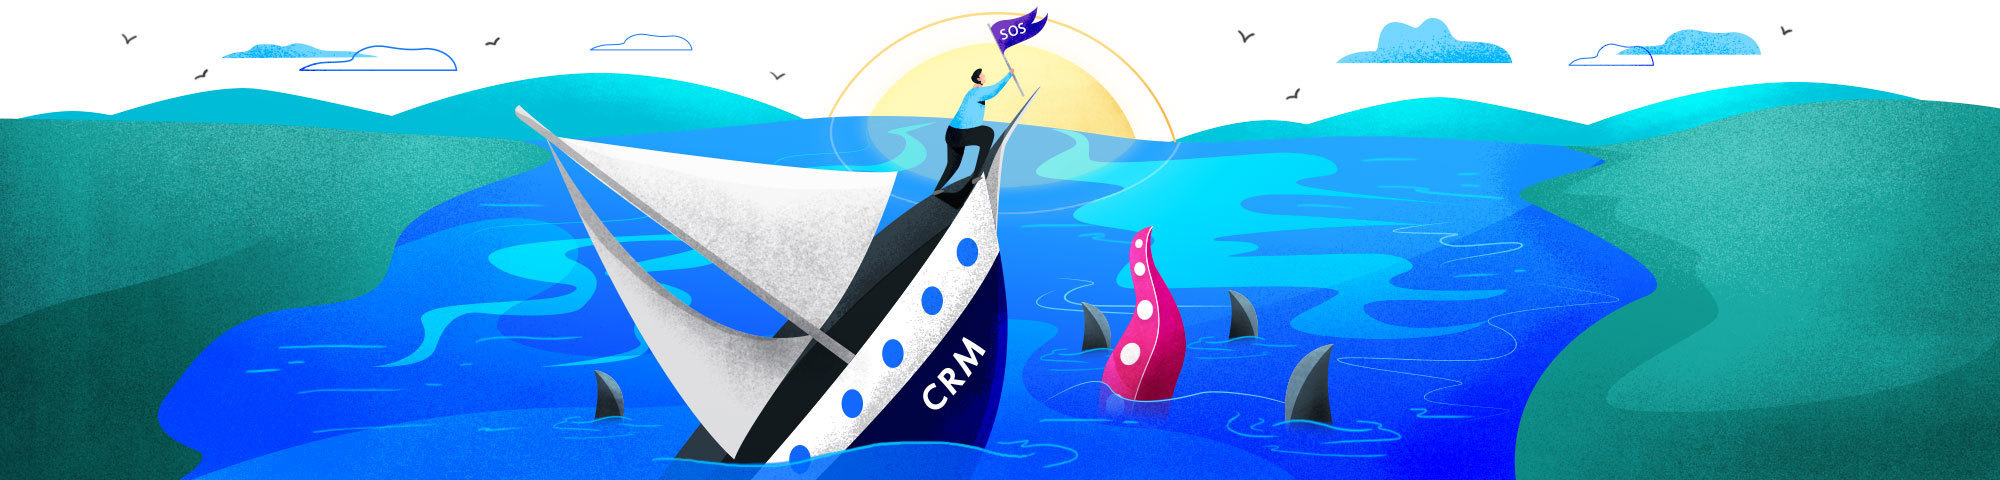 Crm Sinking